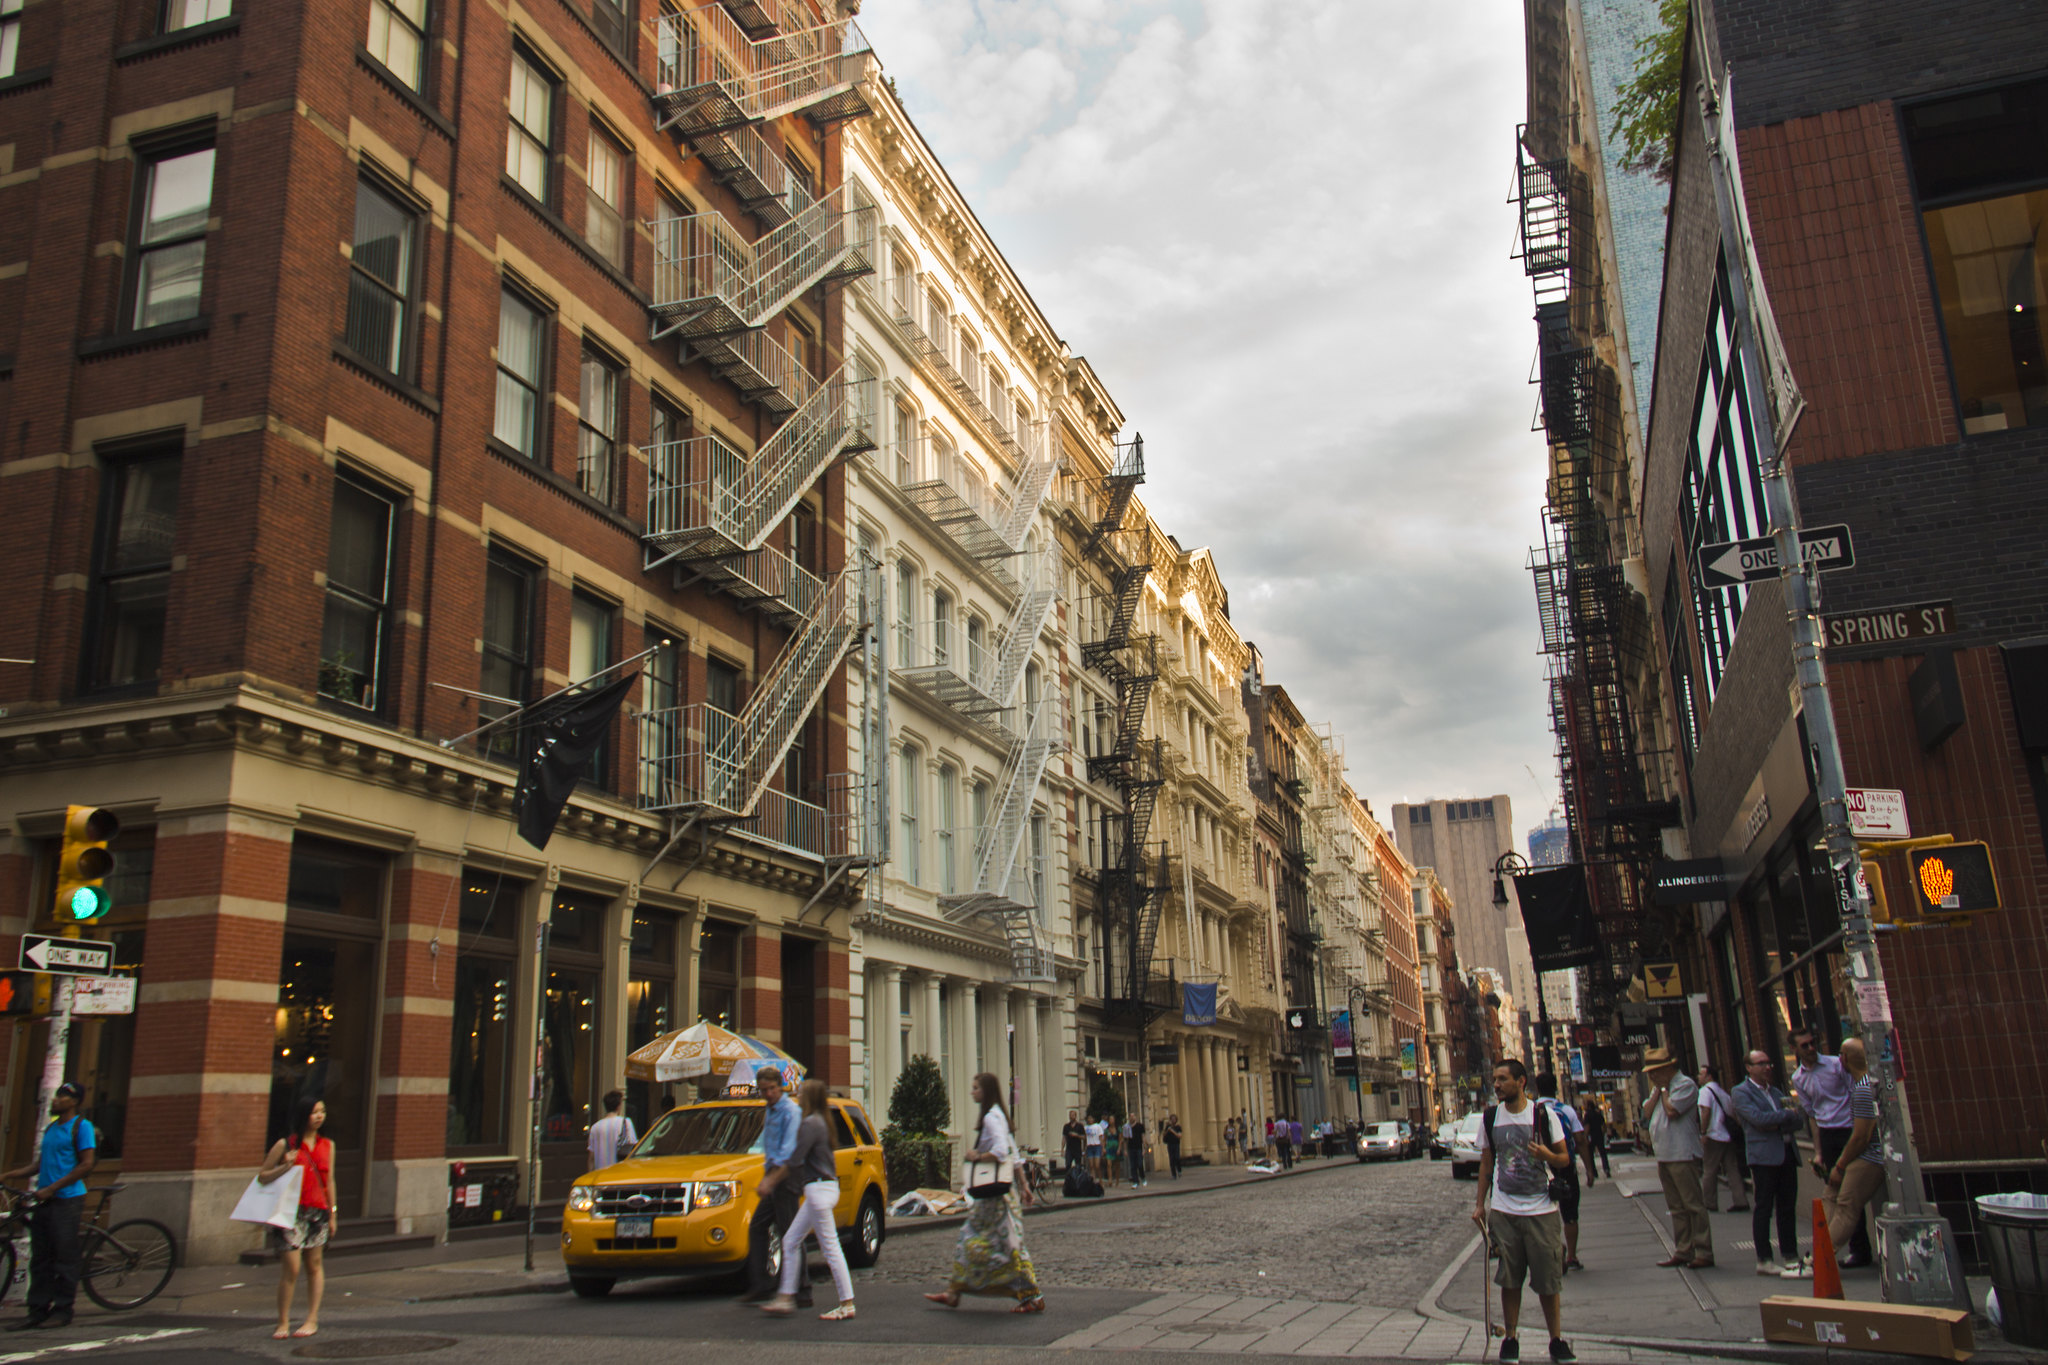 Where To Stay In New York When Visiting For The First Time - SoHo